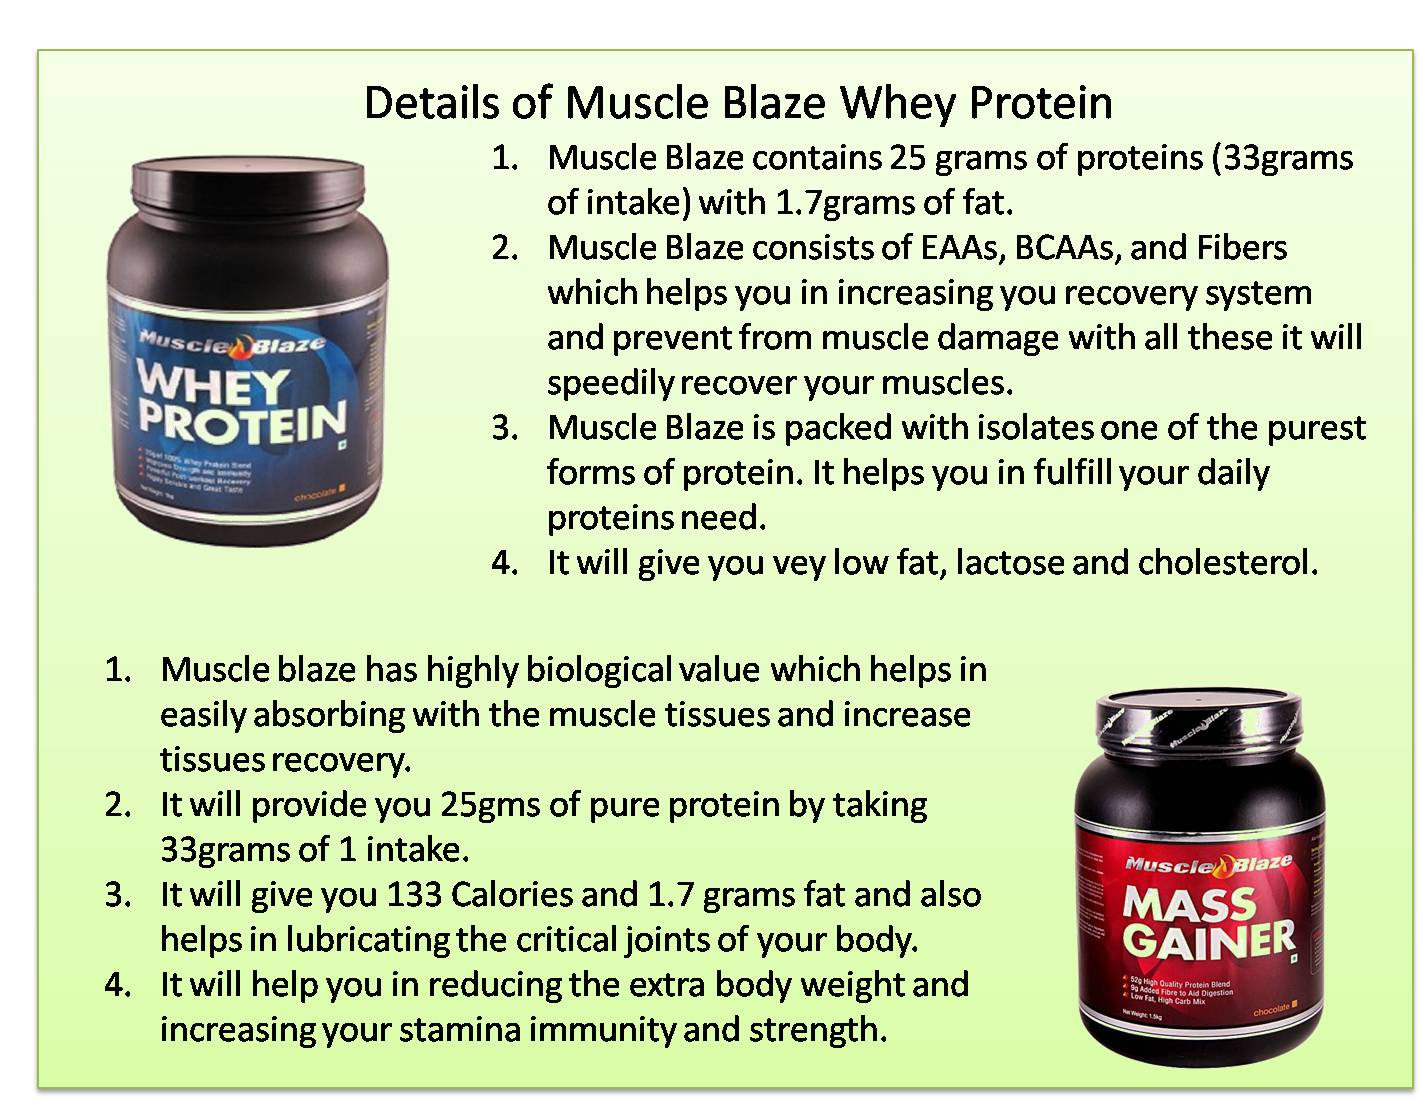 Details of Muscle Blaze Whey Protein